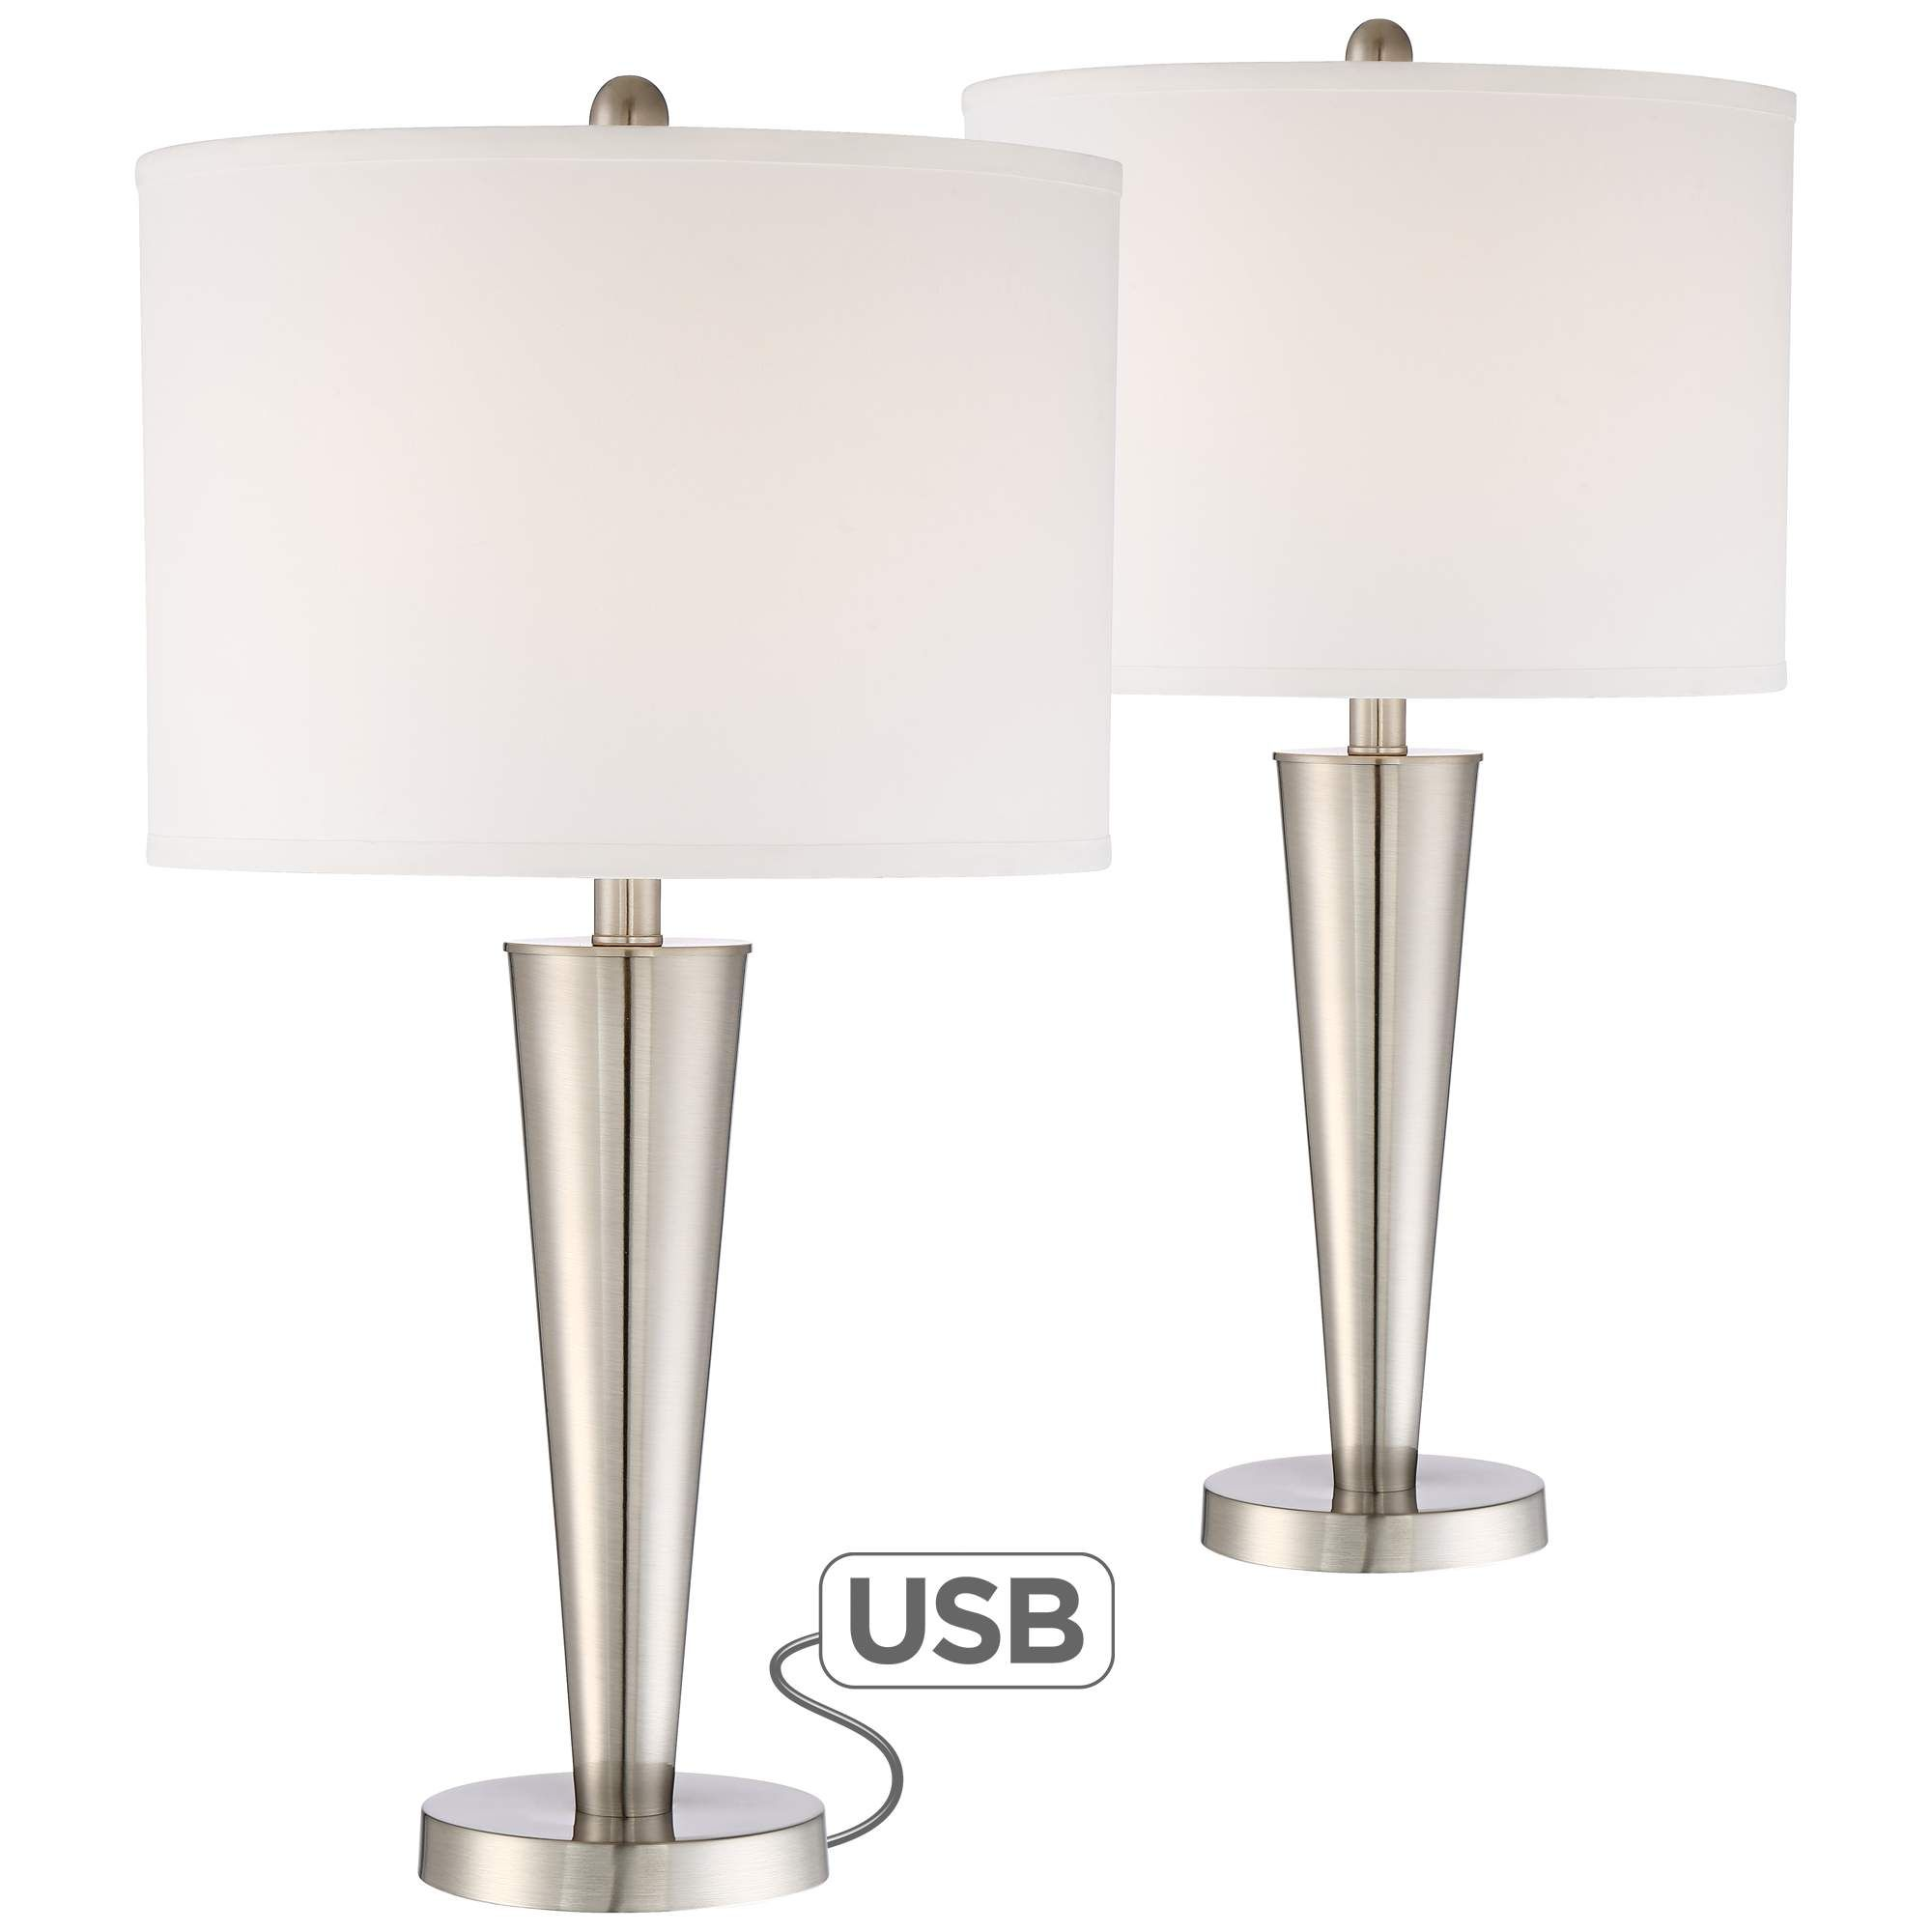 Table Lamps Geoff Brushed Nickel Usb Table Lamp Set Of 2 In 2020 Table Lamp Sets Table Lamp Lamp Sets